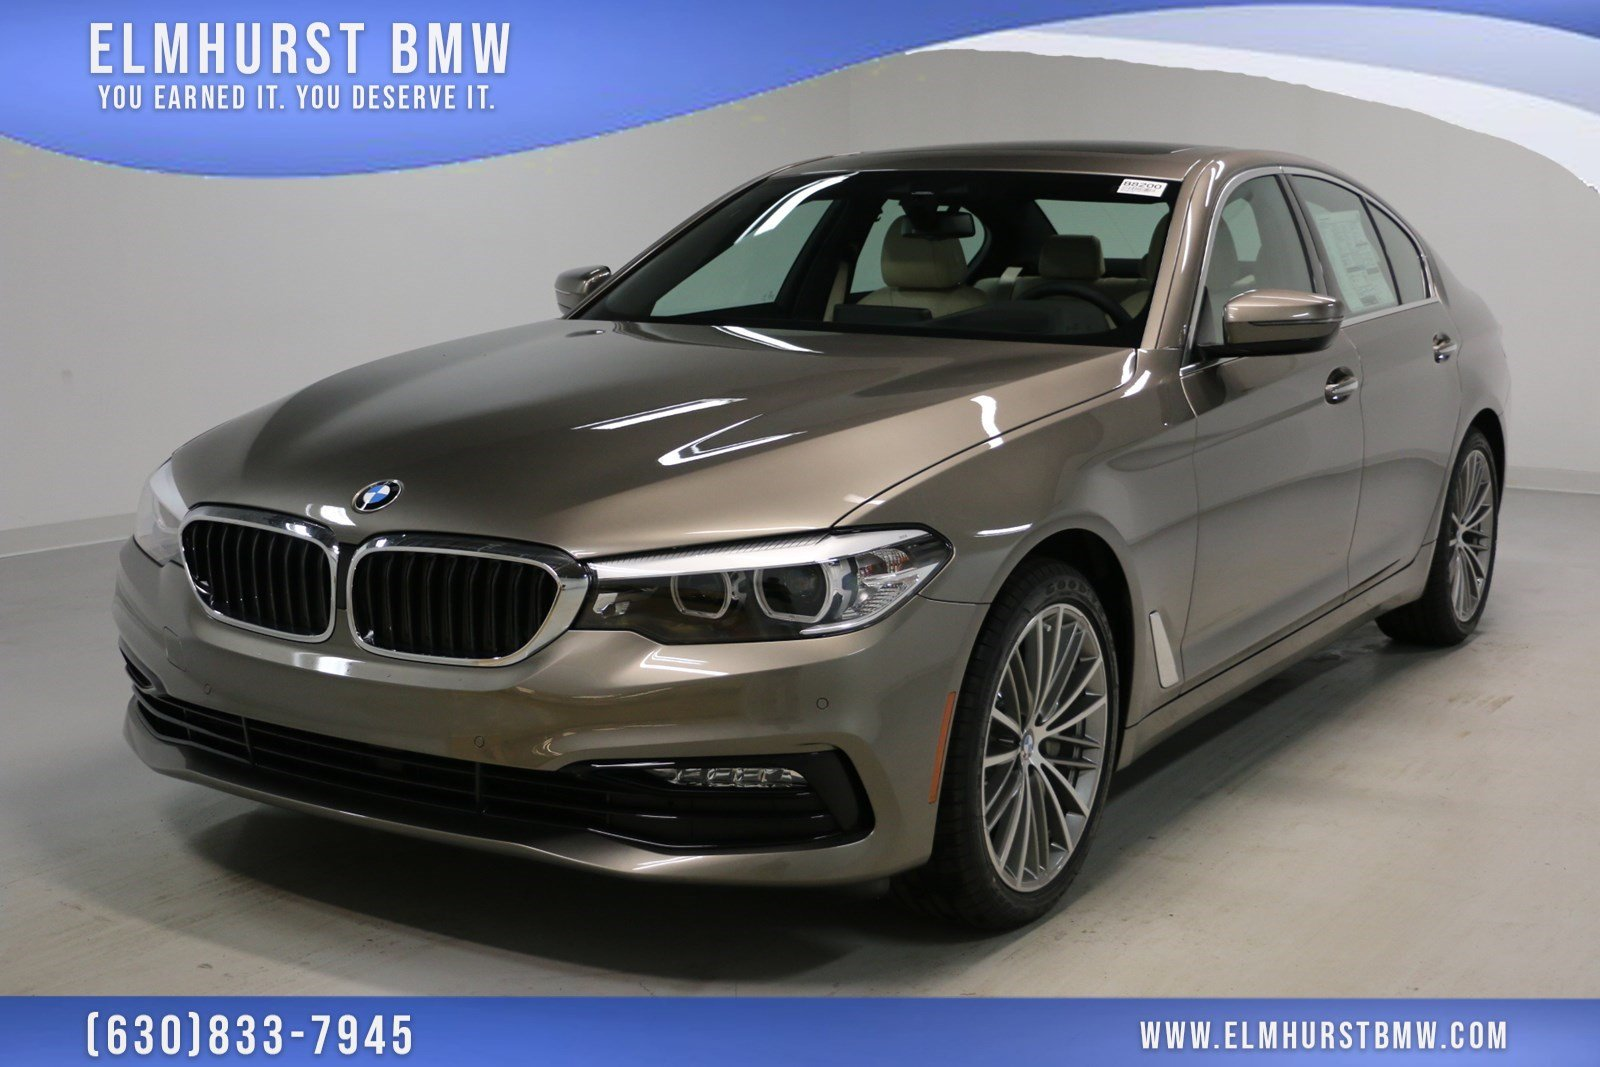 pre-owned 2018 bmw 5 series 530i xdrive 4dr car in elmhurst #b8200